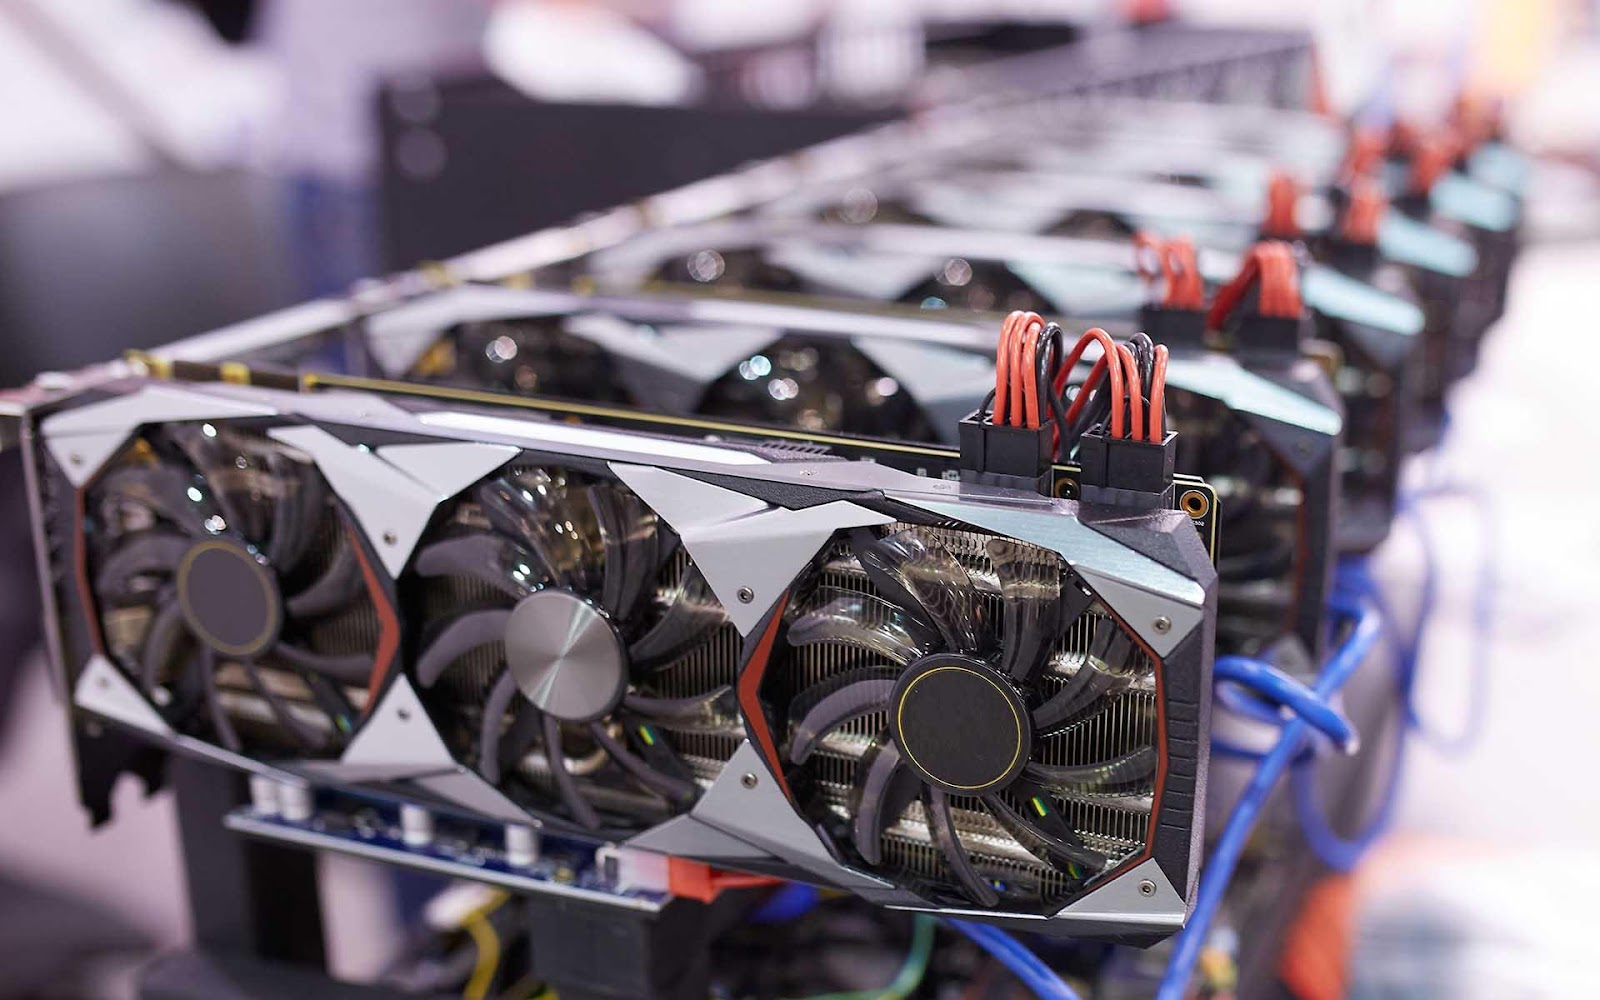 How to Build an Ethereum Mining Rig at Home in 2020